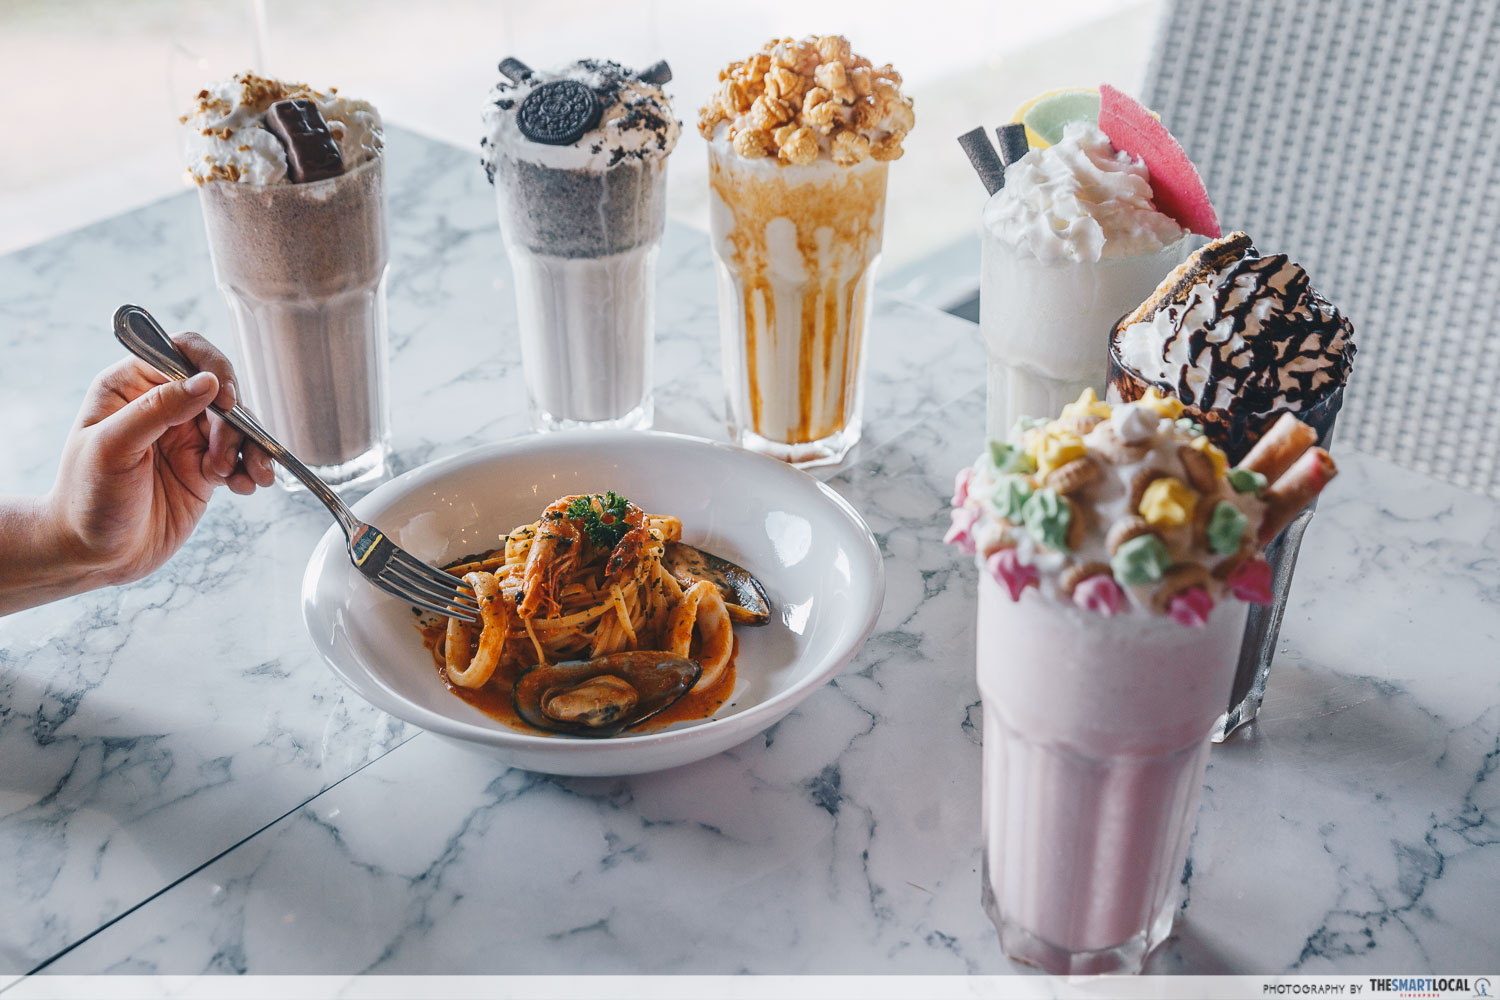 halal cafes north singapore milkshake